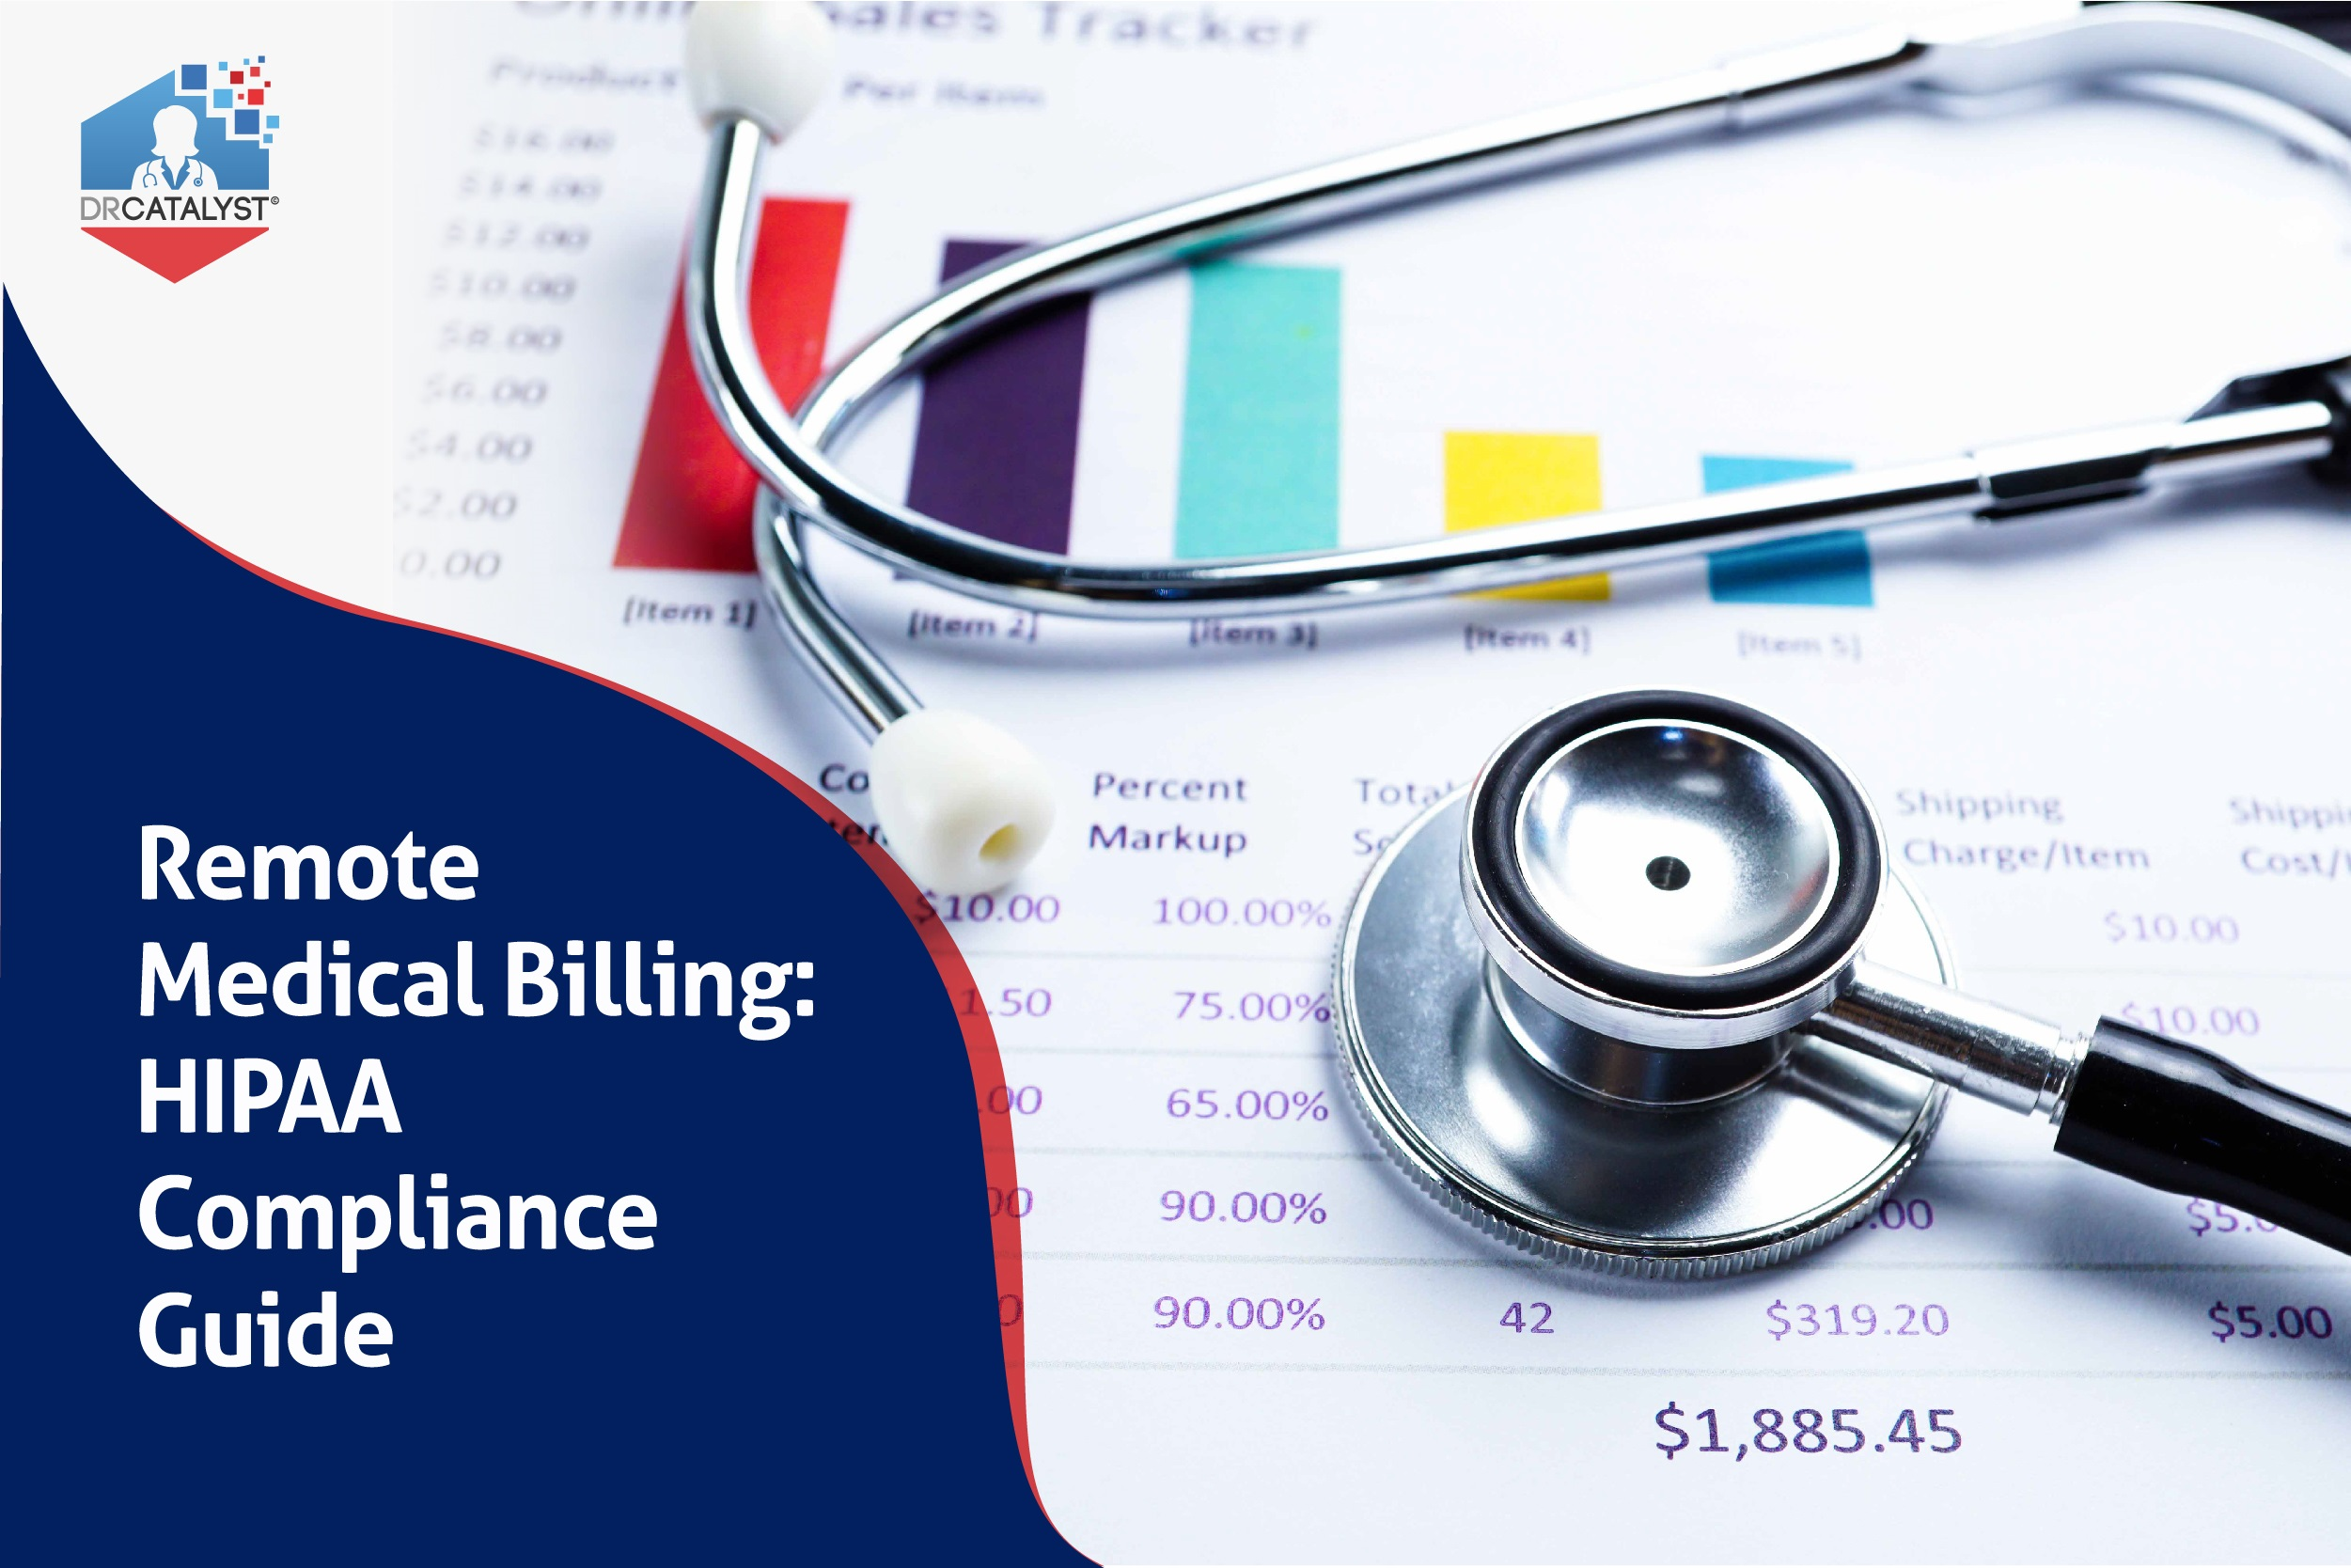 Remote Medical Billing